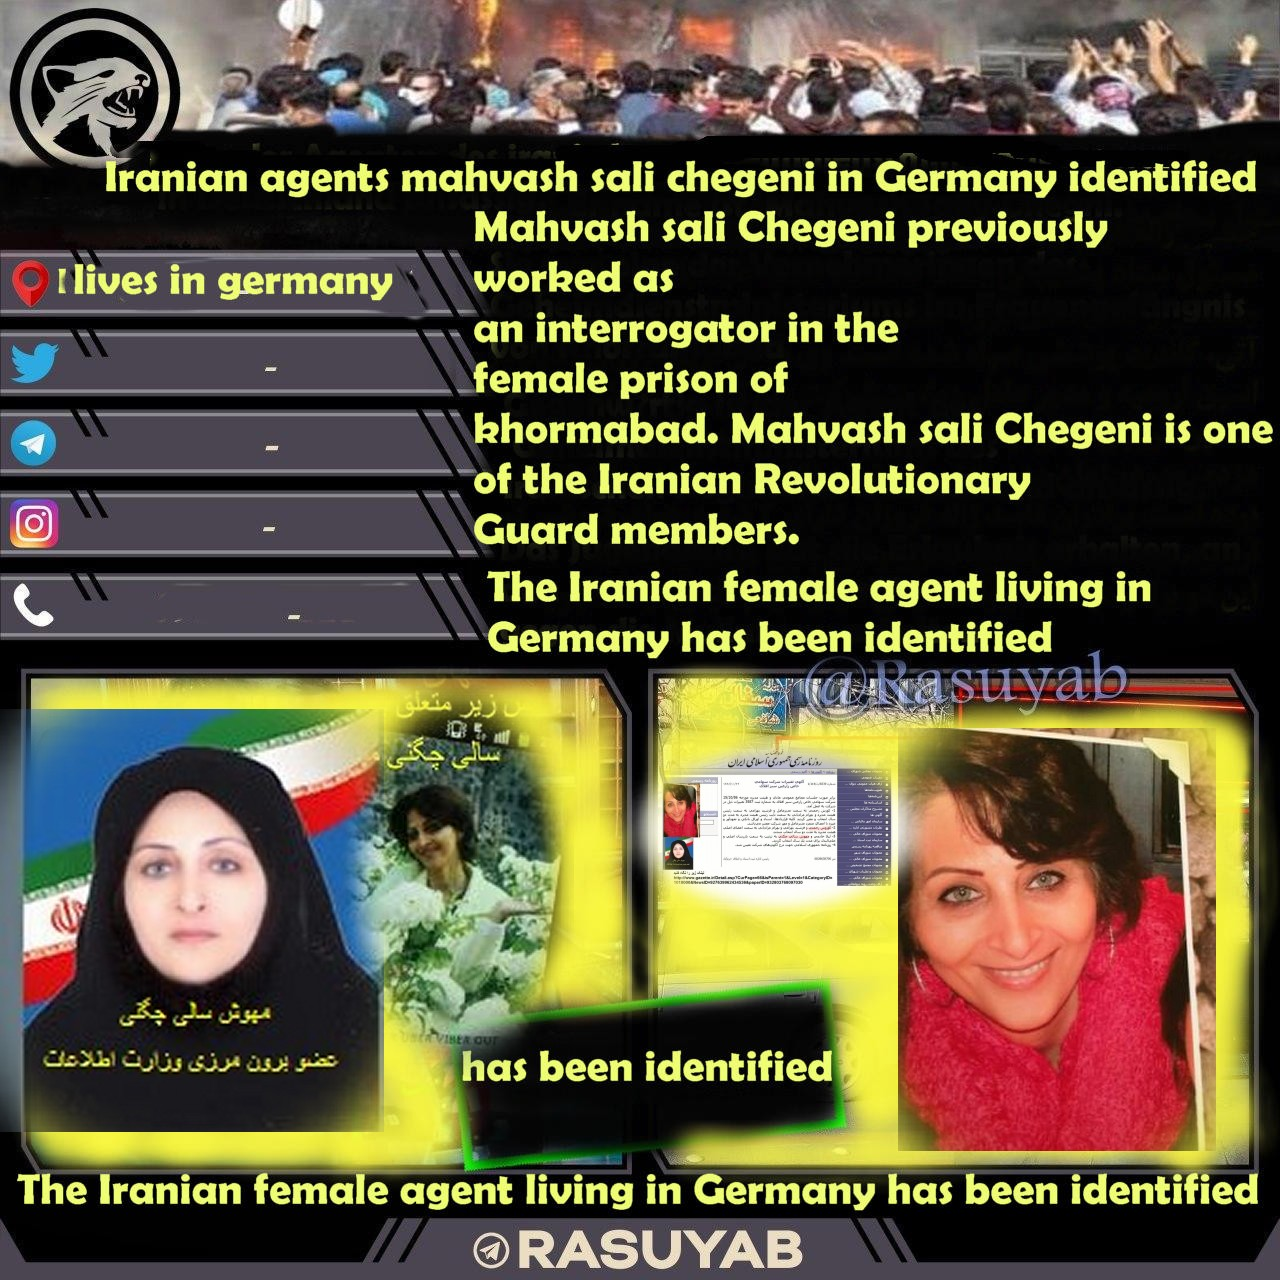 The Iranian female agent living in Germany has been identified. lives in germany